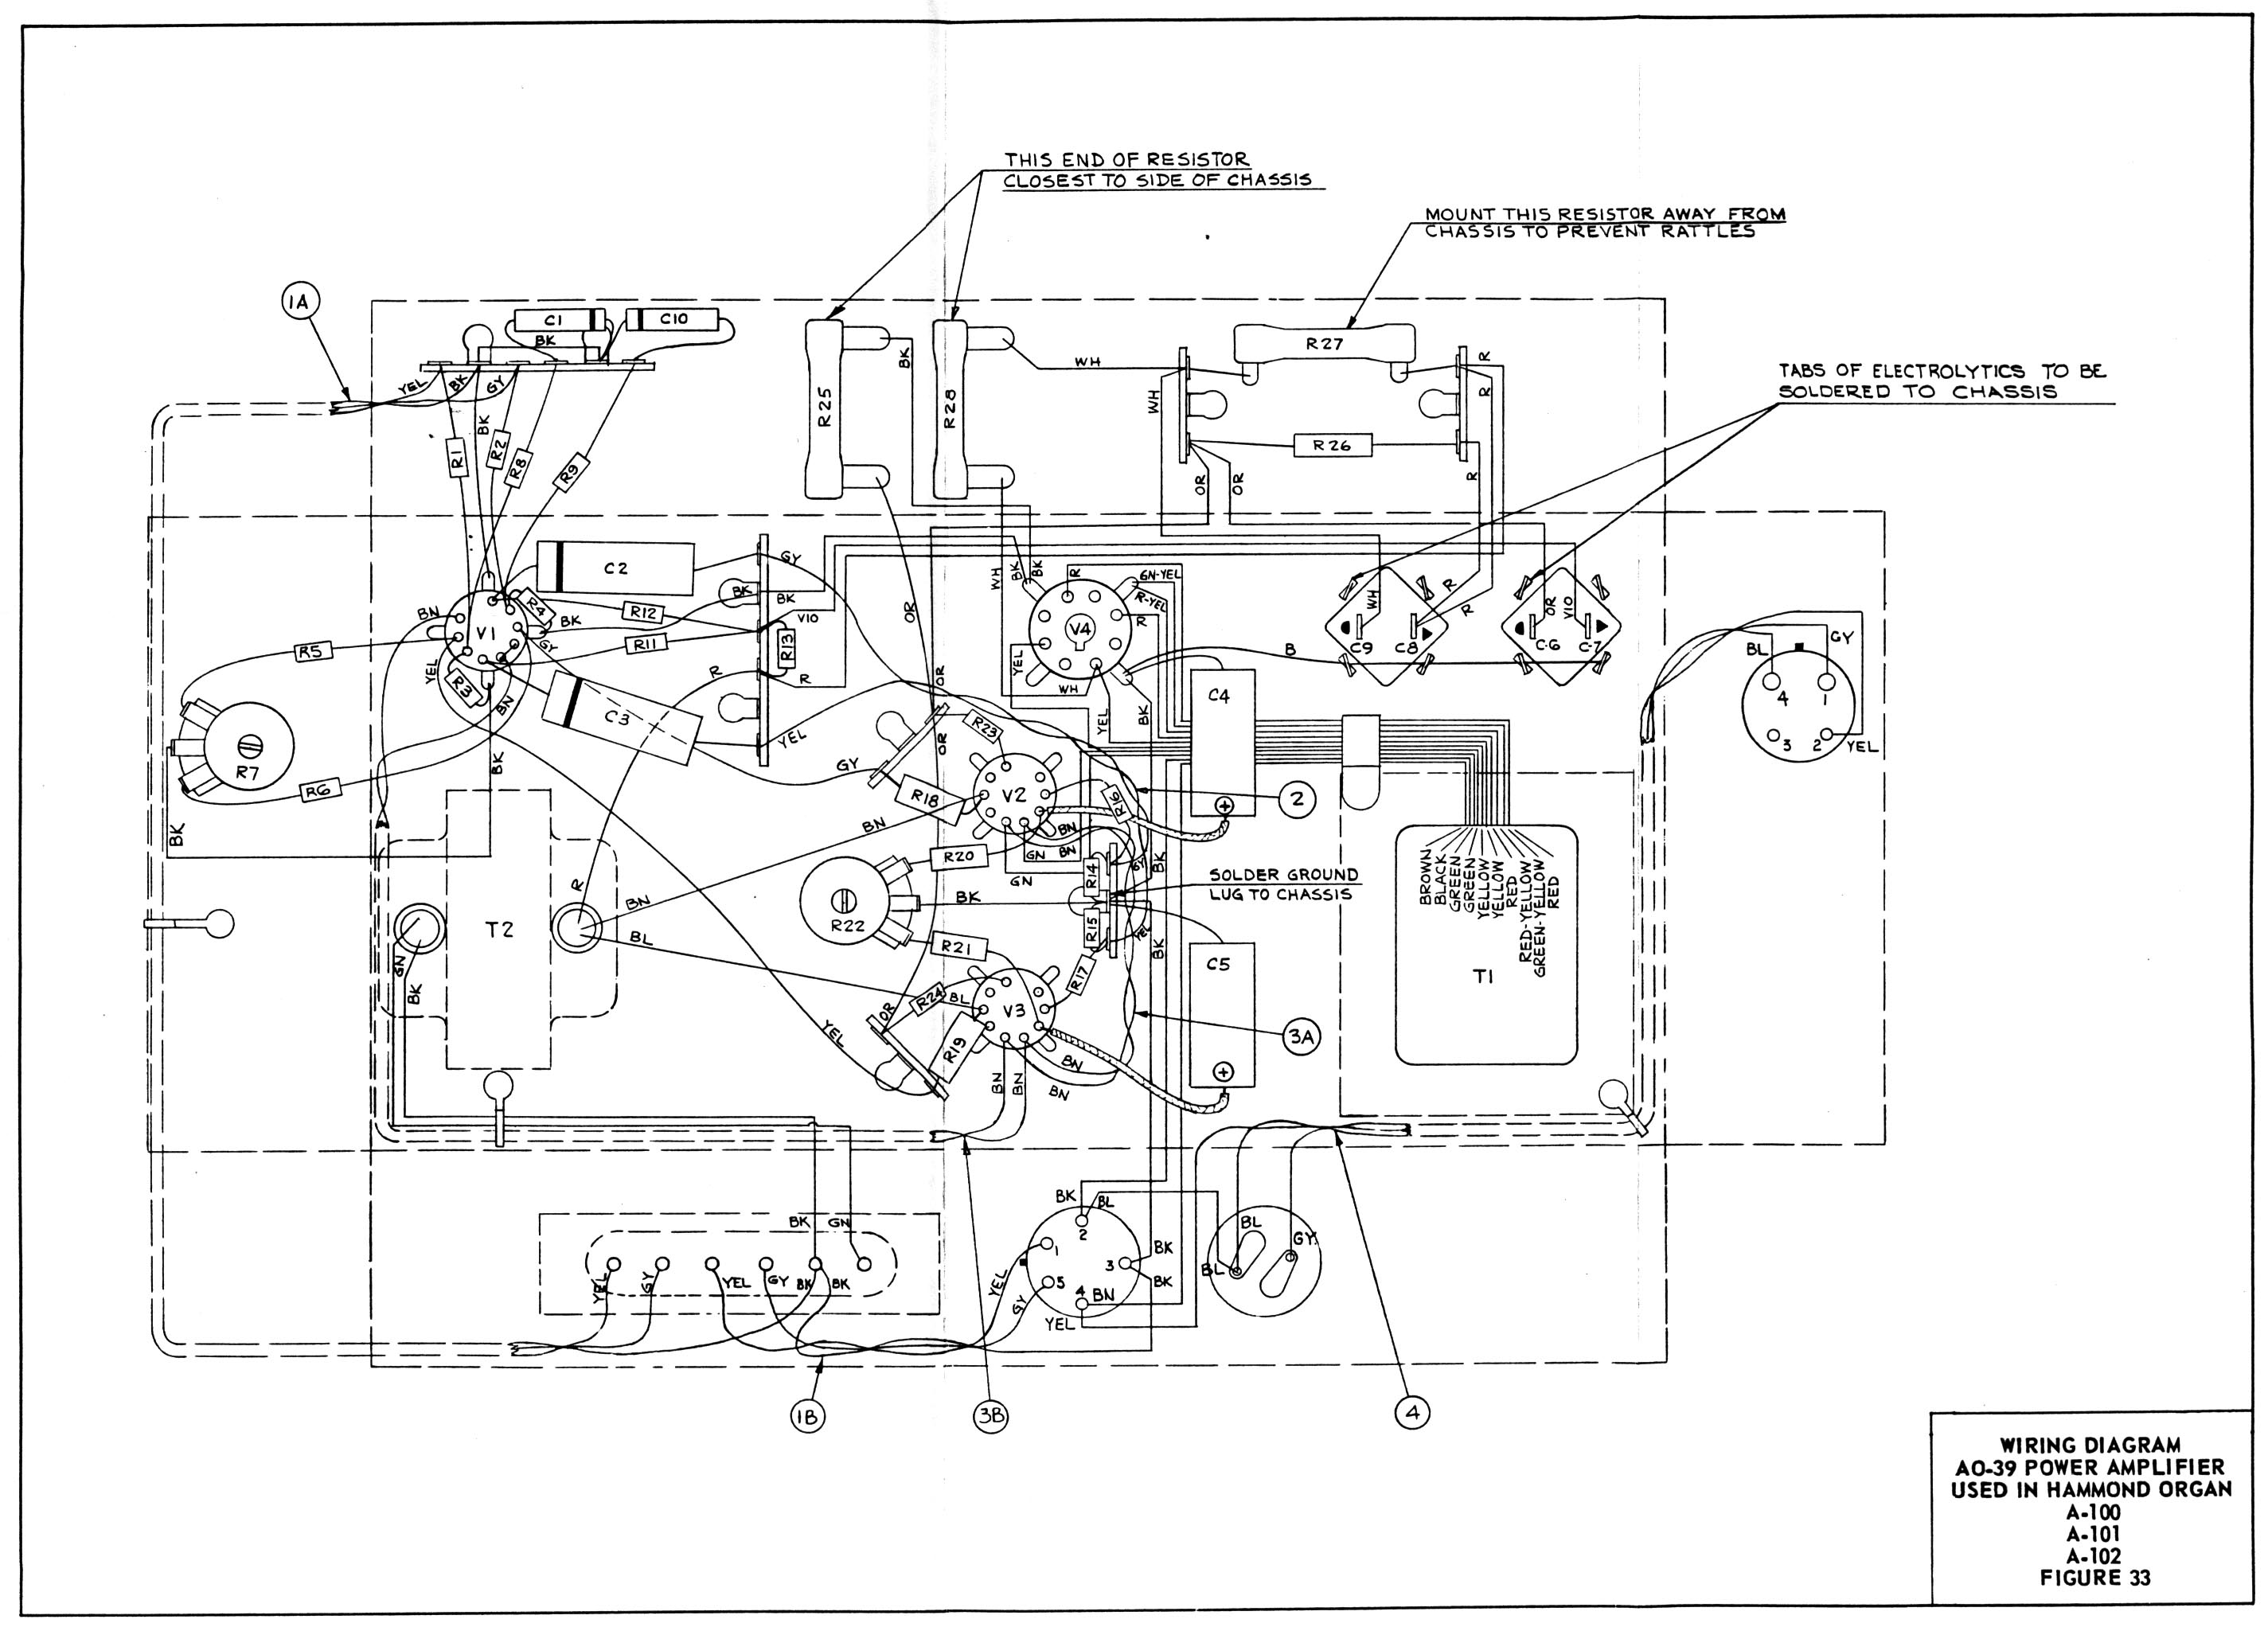 schem4 a 100 service manual true t 49 wiring diagram at readyjetset.co